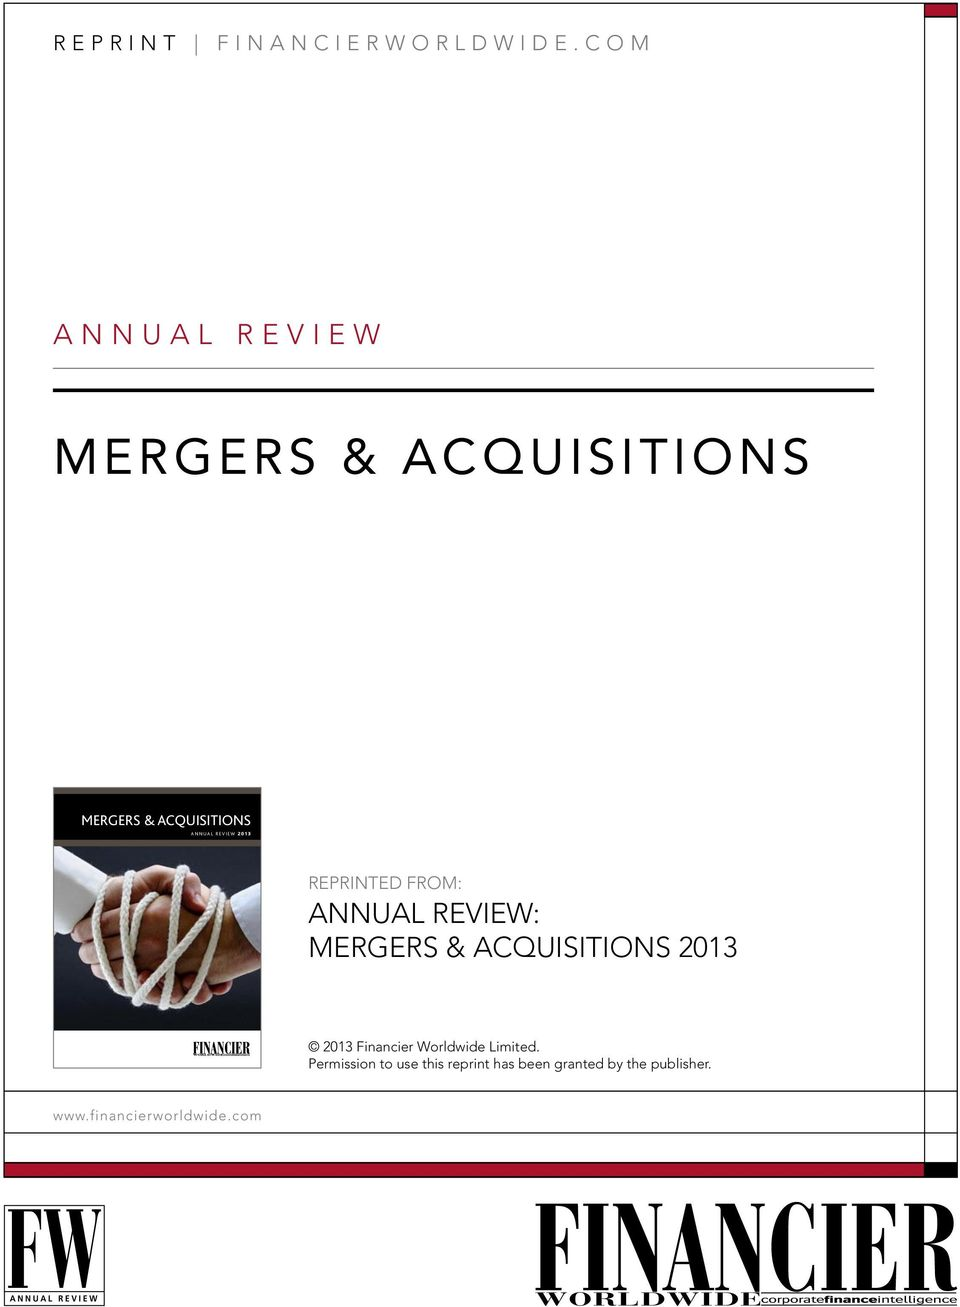 MERGERS & ACQUISITIONS 2013 2013 Financier Worldwide Limited.